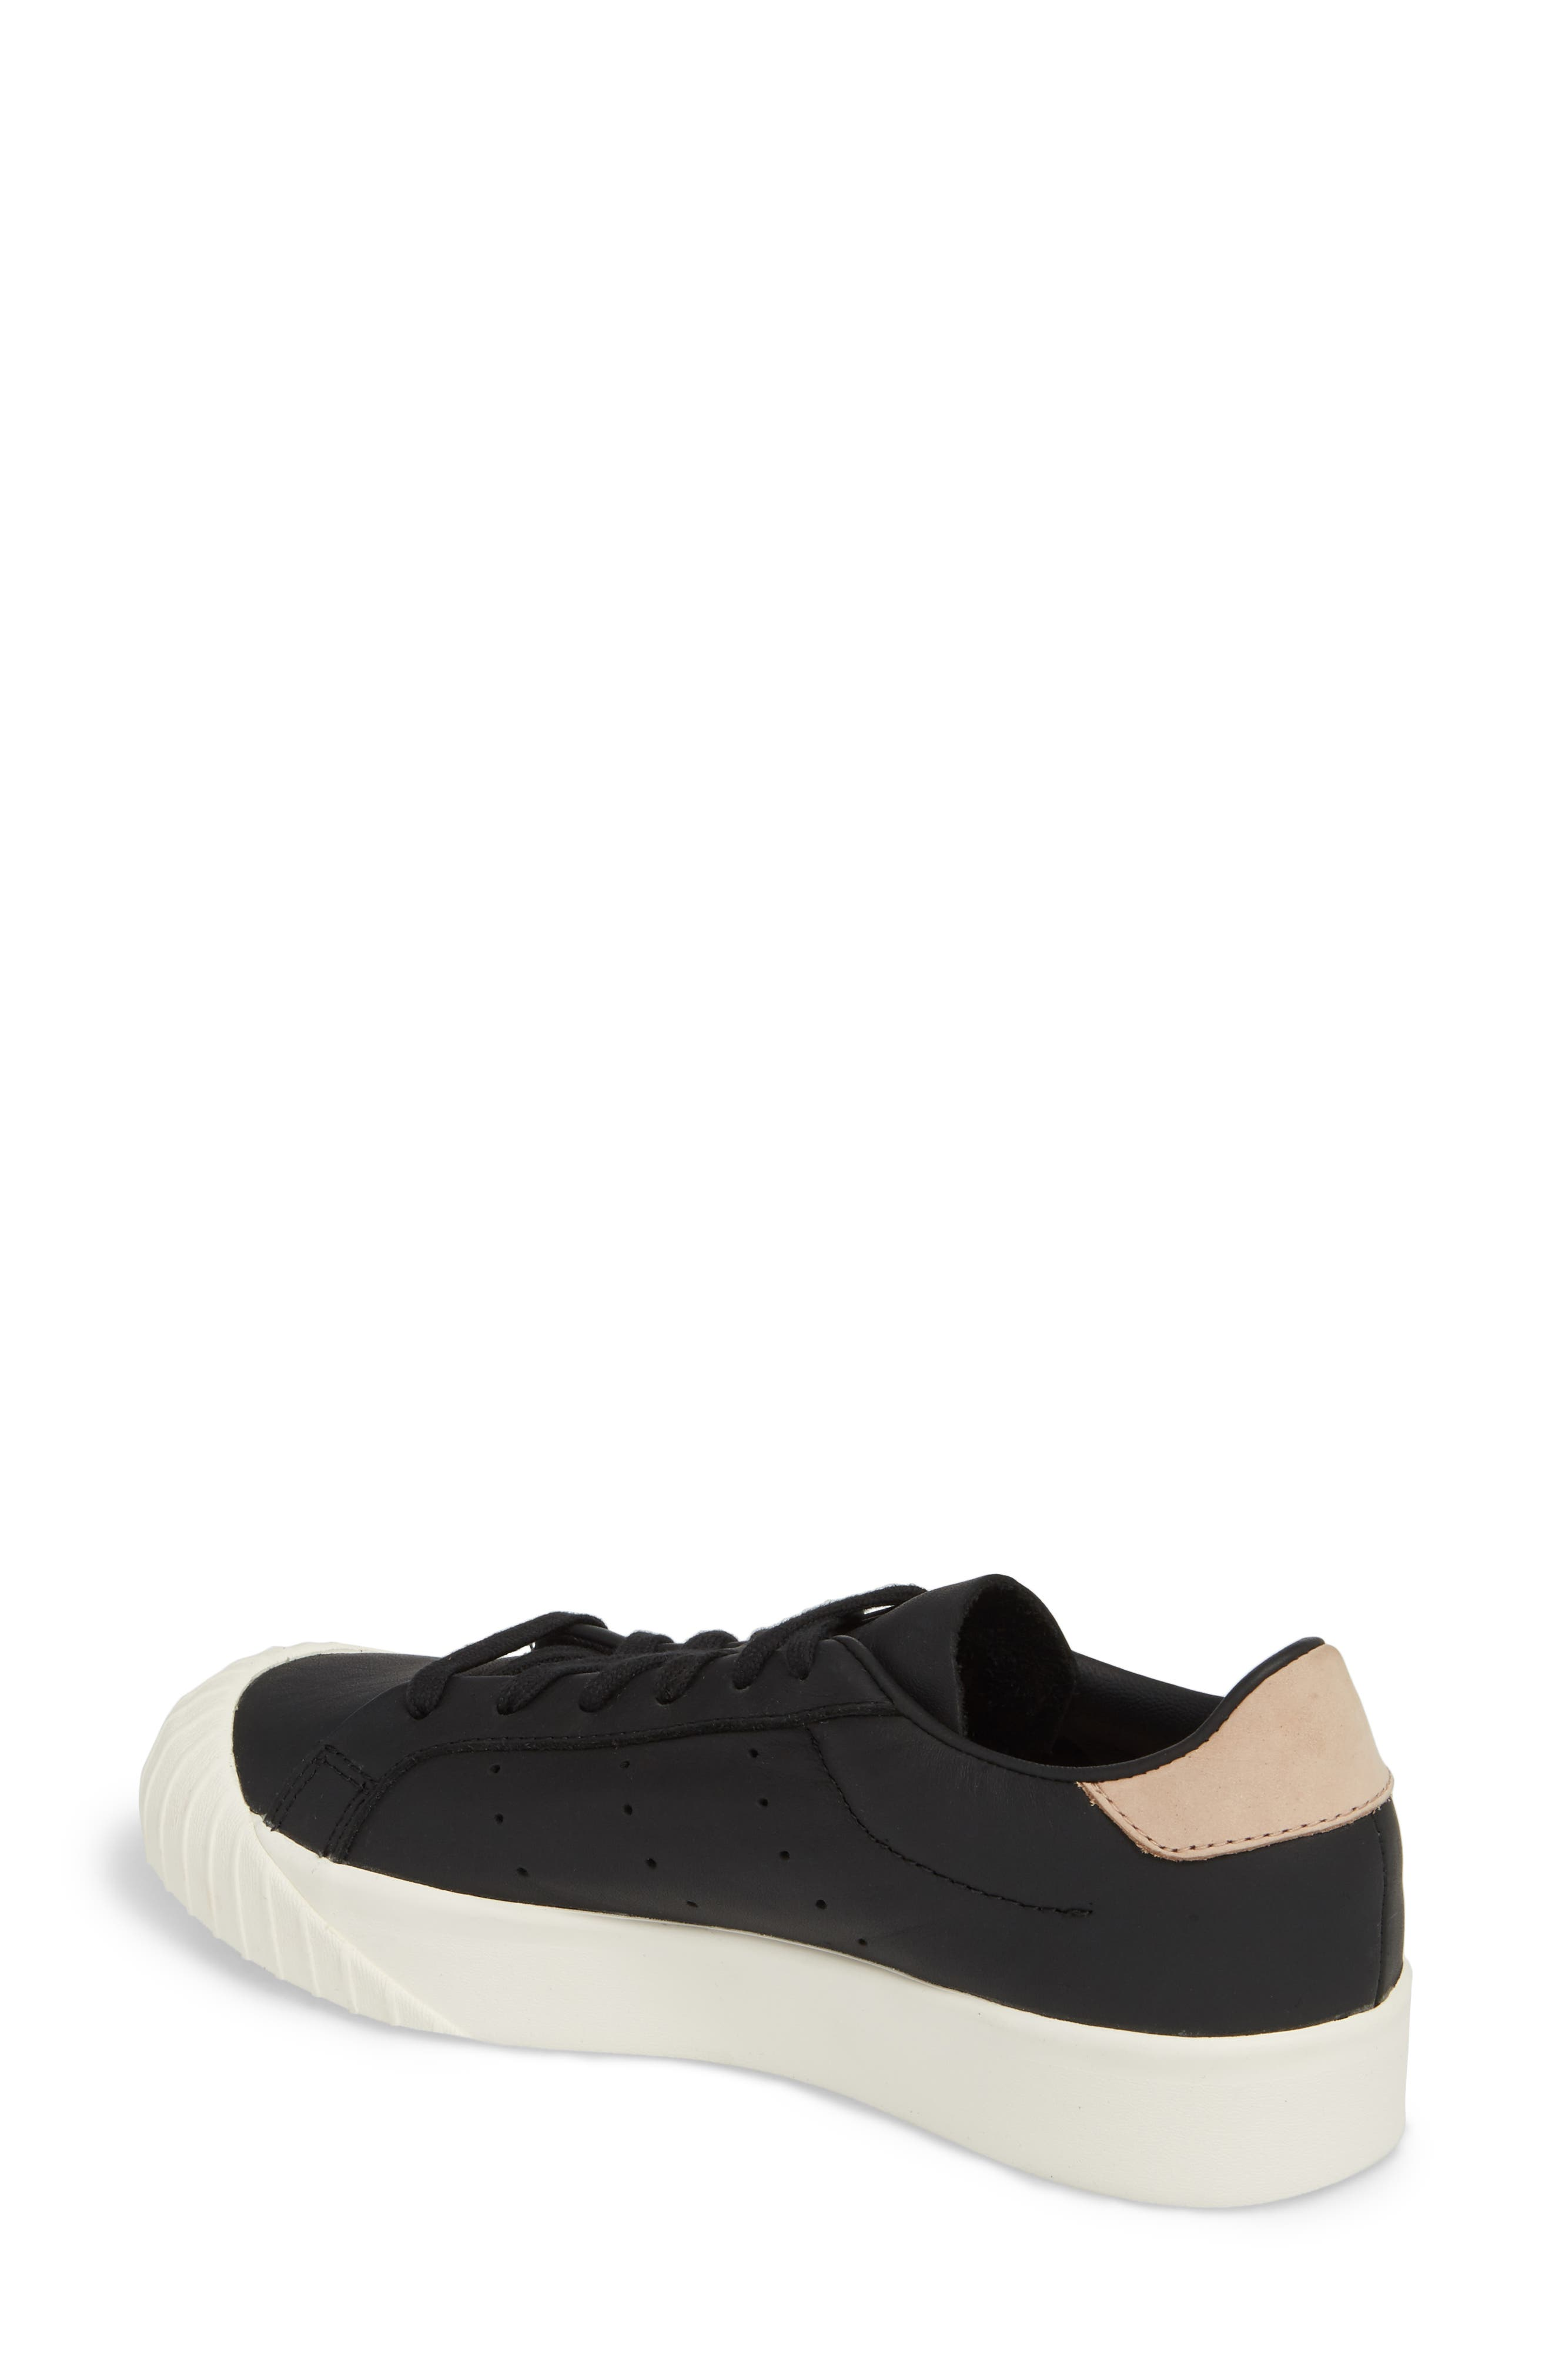 Everyn Perforated Low Top Sneaker,                             Alternate thumbnail 2, color,                             001